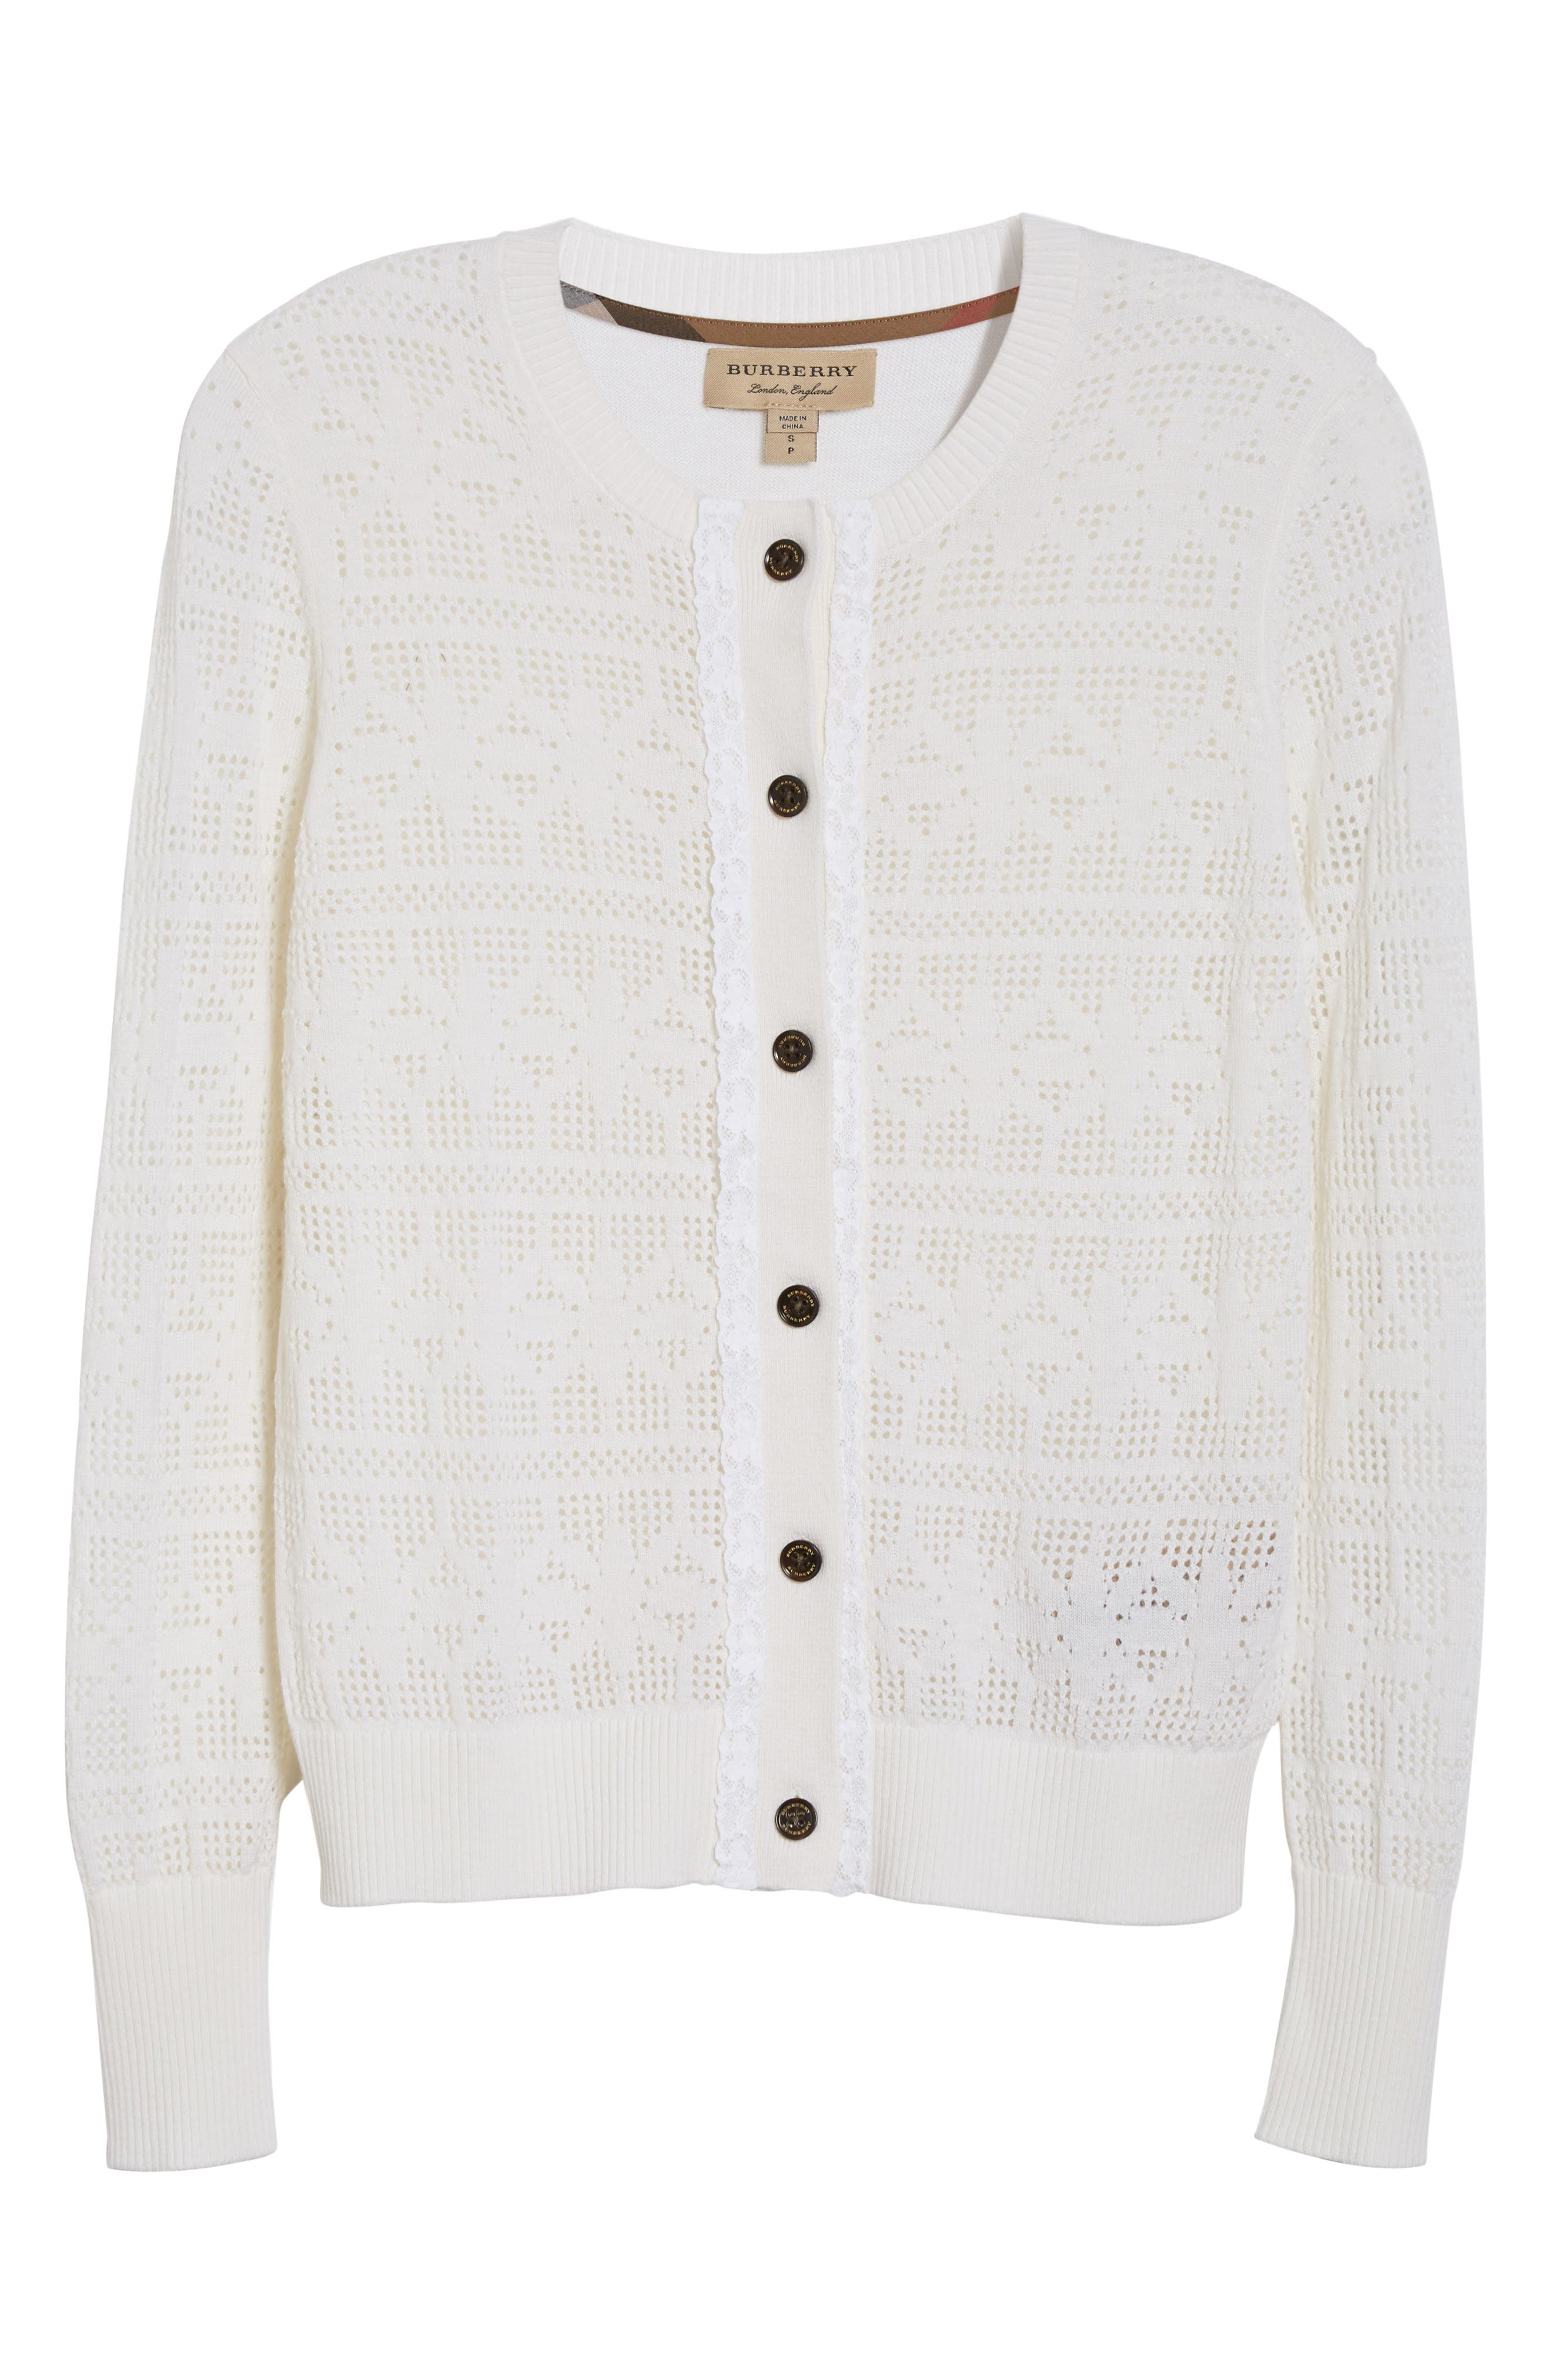 River Elvo Wool & Cashmere Cardigan,                             Alternate thumbnail 4, color,                             Natural White